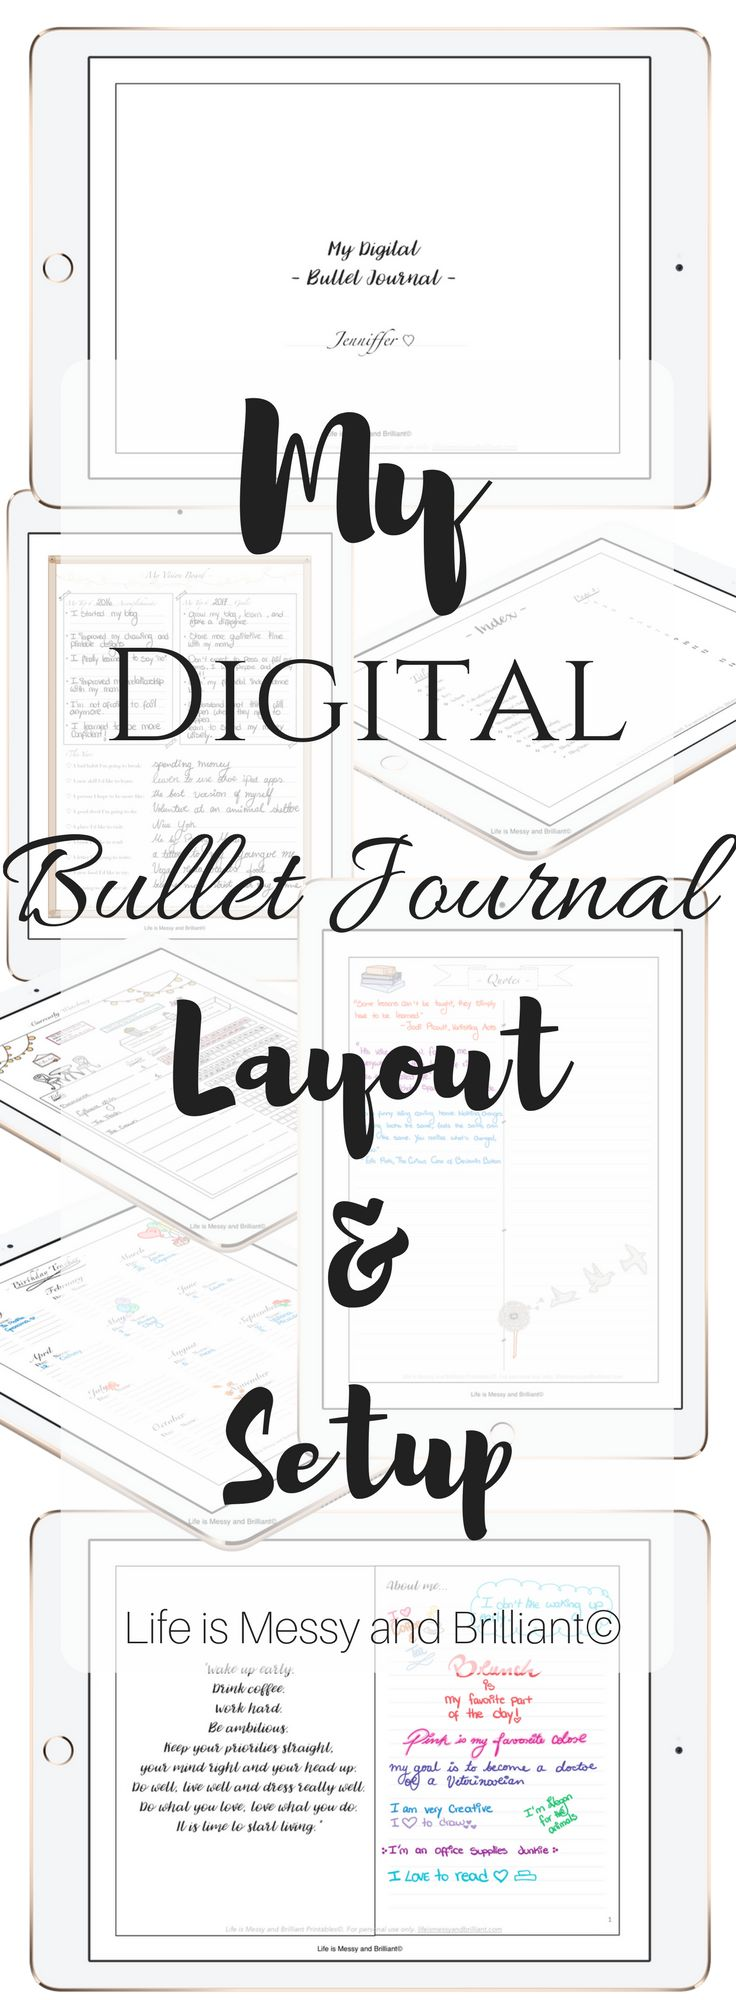 Digital Bullet Journal and Free Bullet Journal printables.